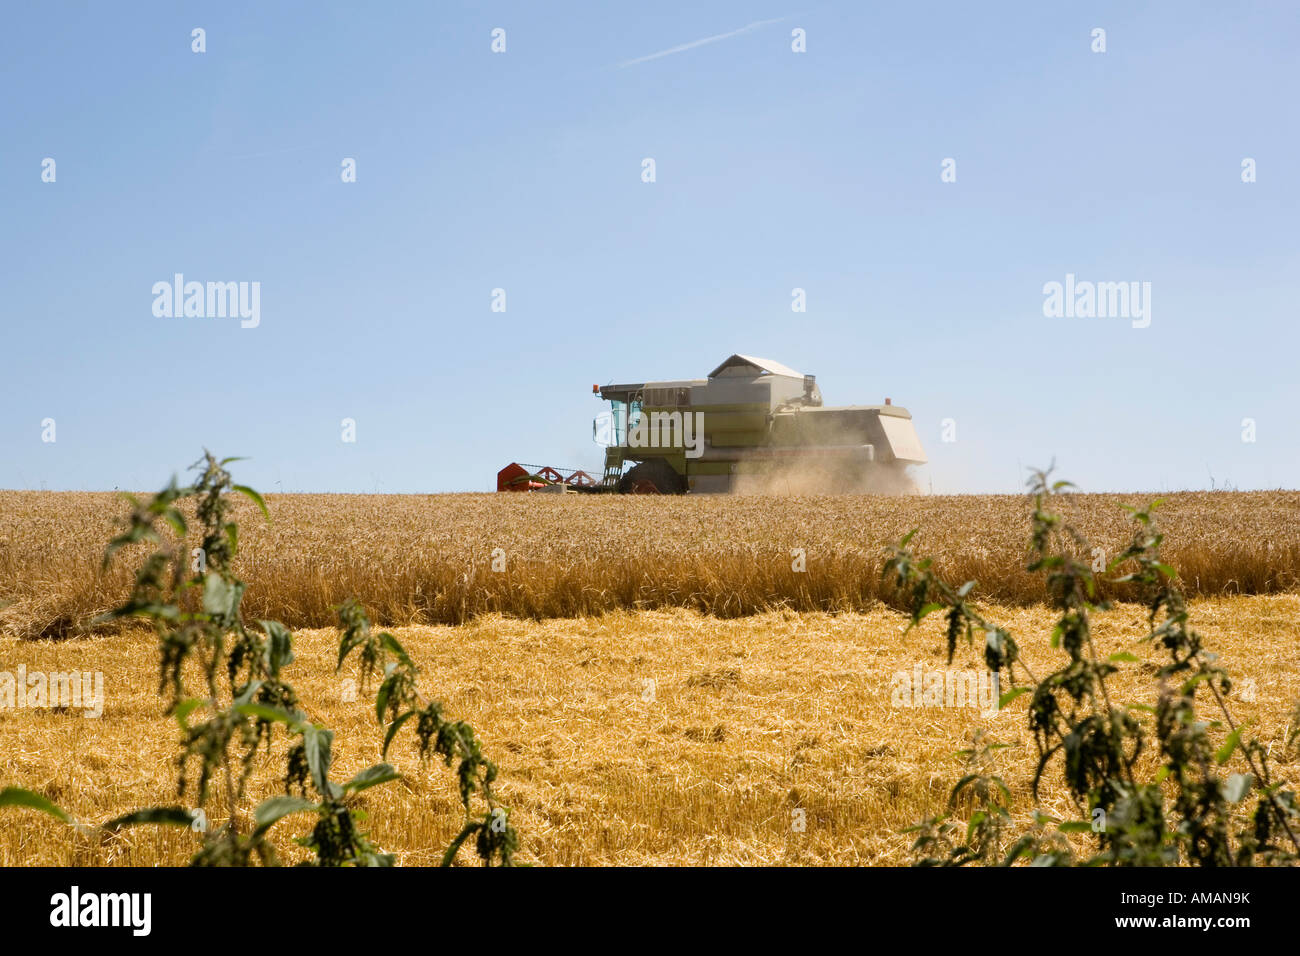 A combine harvester in a wheat field - Stock Image